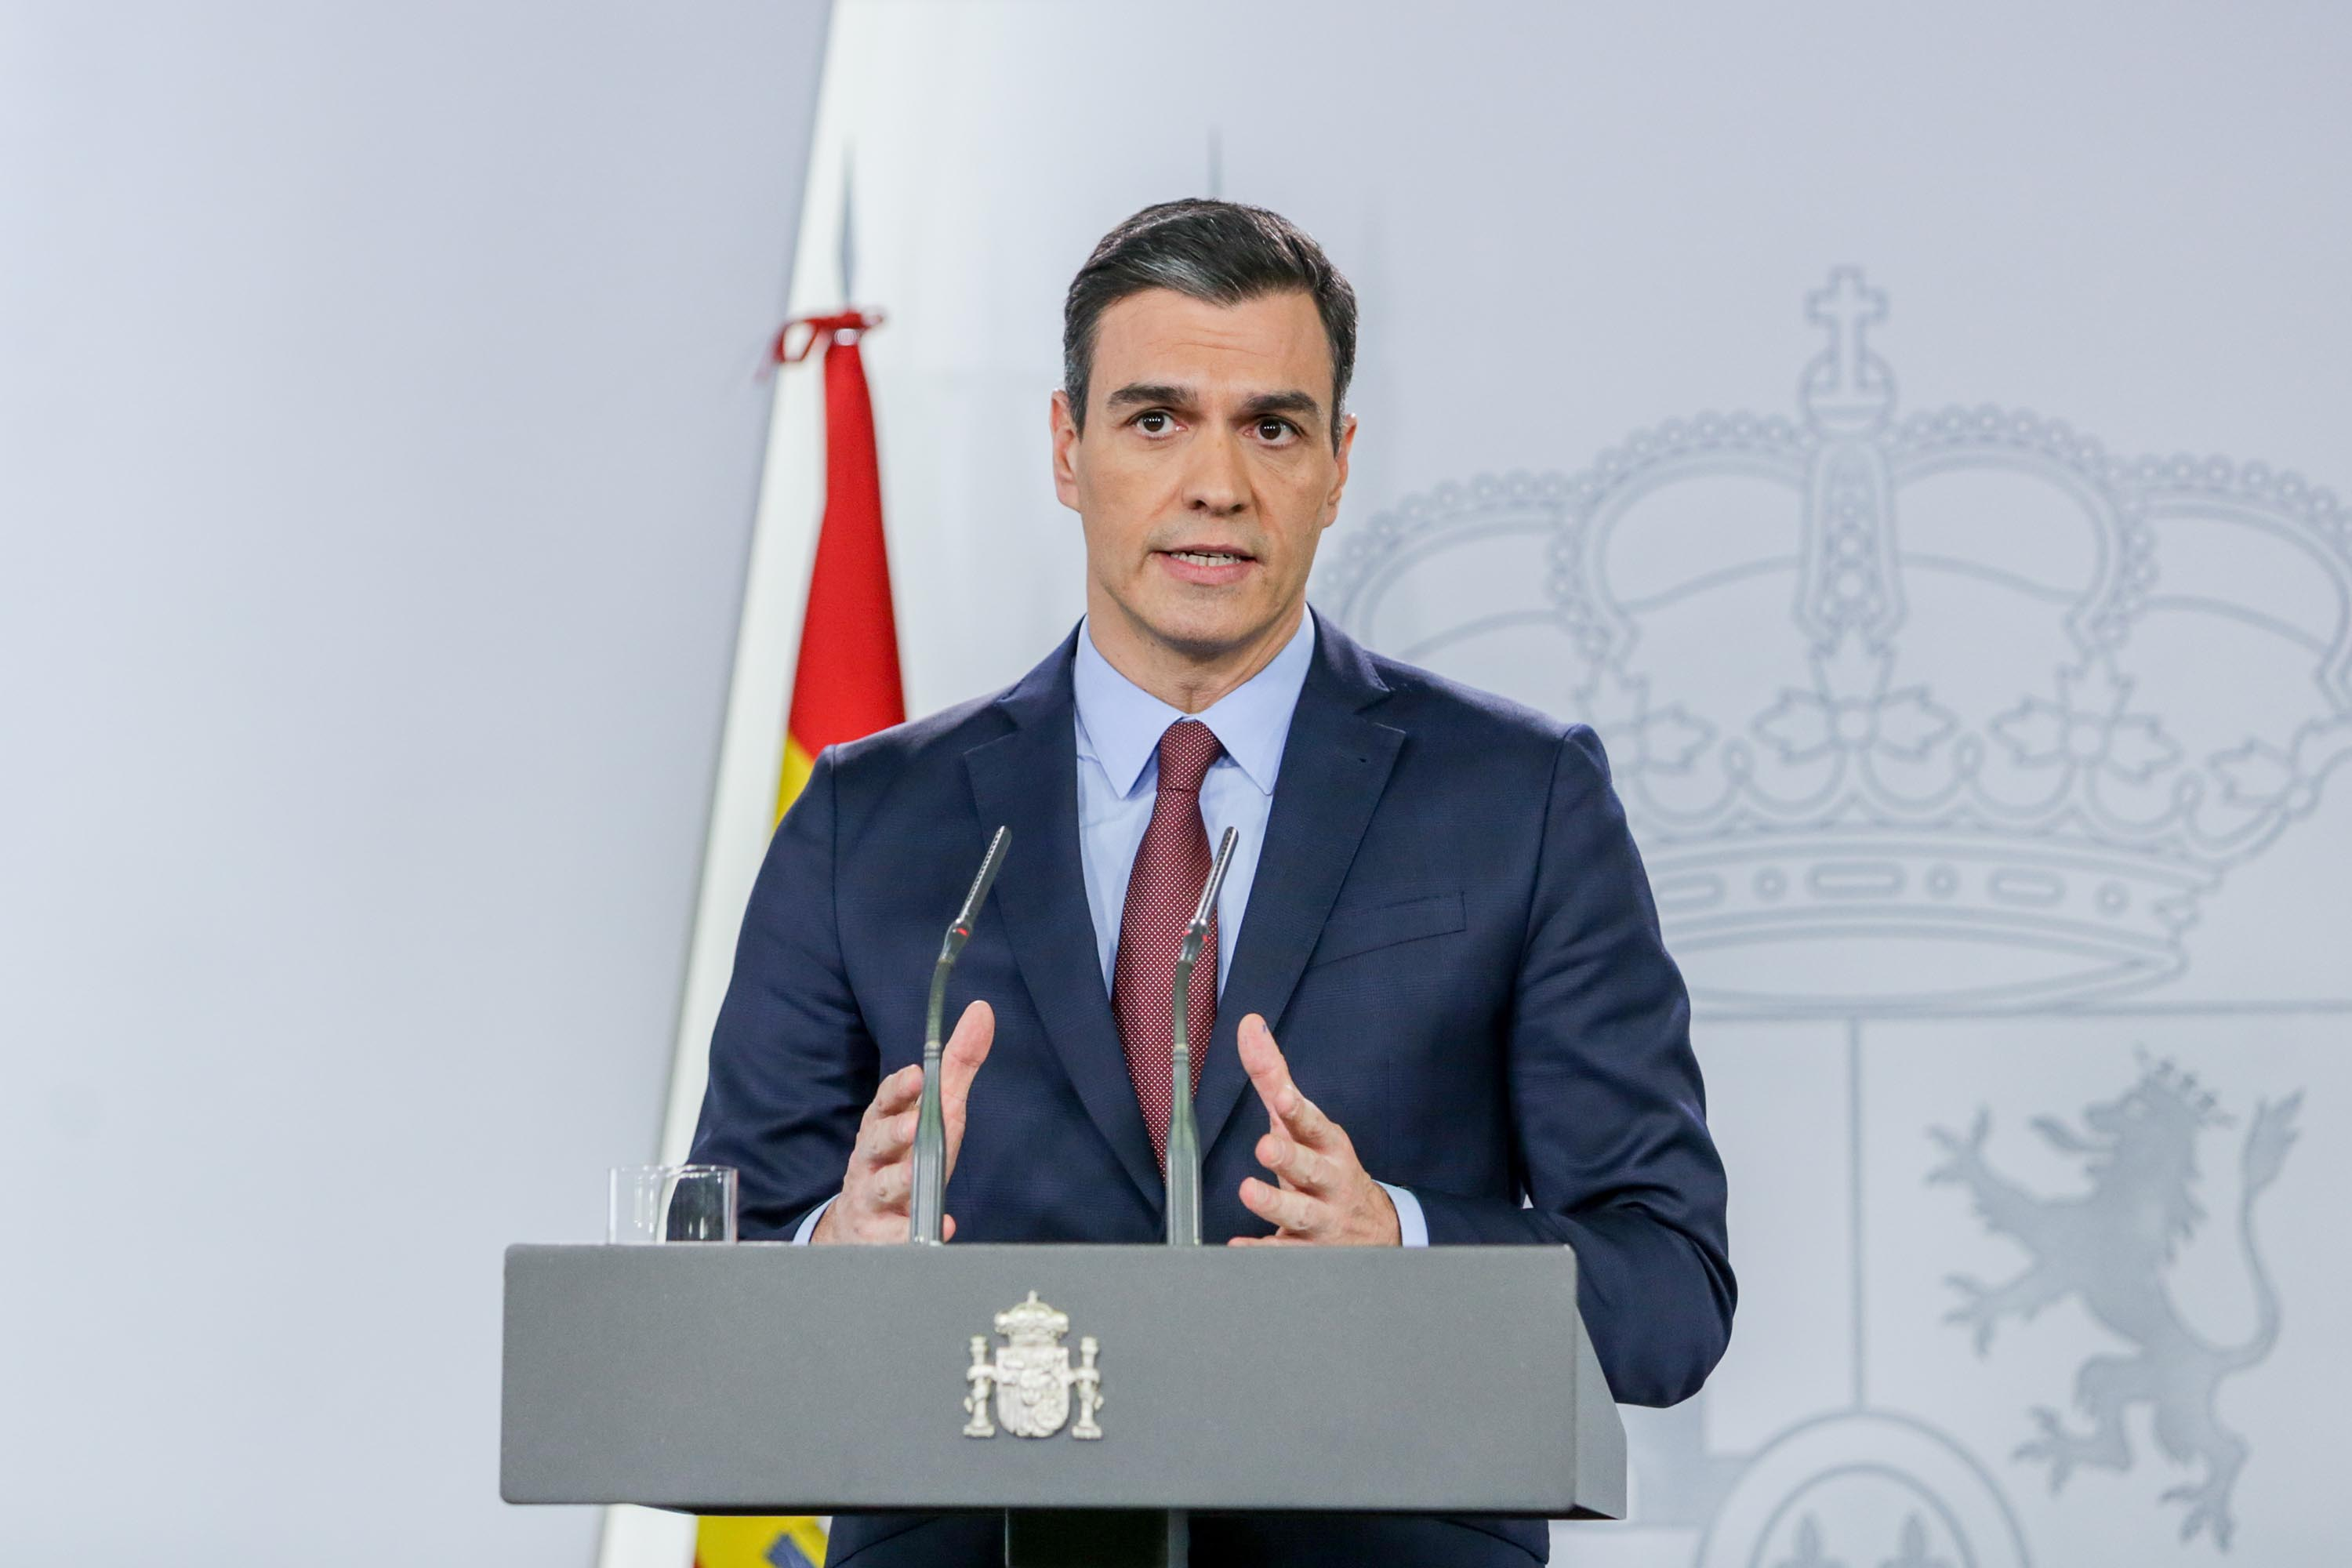 Spanish Prime Minister Pedro Sanchez gives a press conference on the impact of the coronavirus outbreak in Madrid, Spain, on March 10.